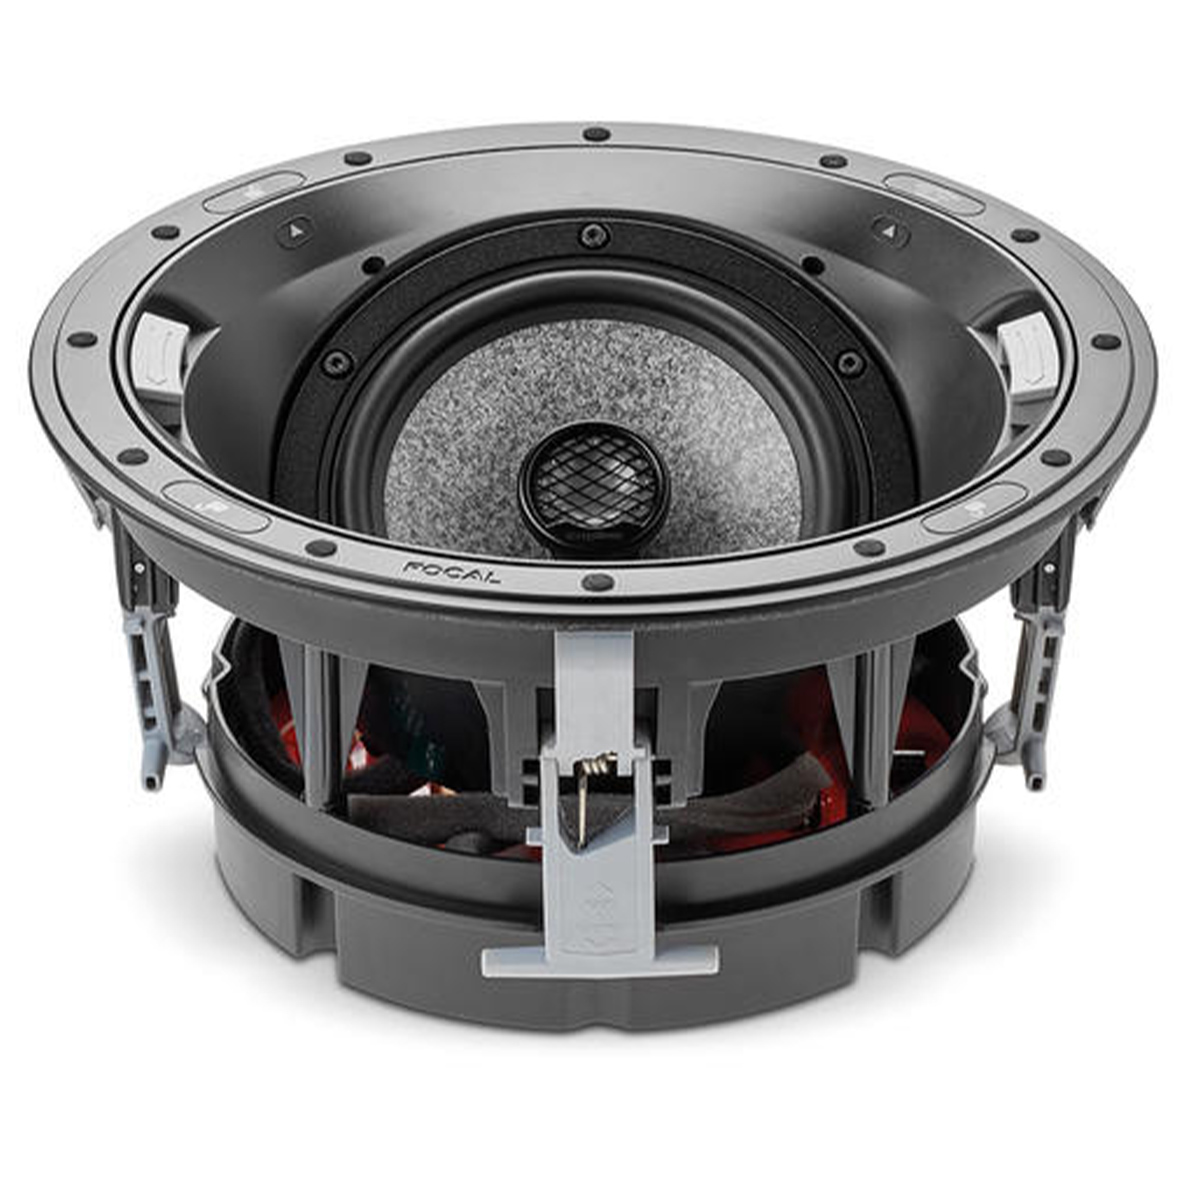 Focal 1000ica Front Life Style Store